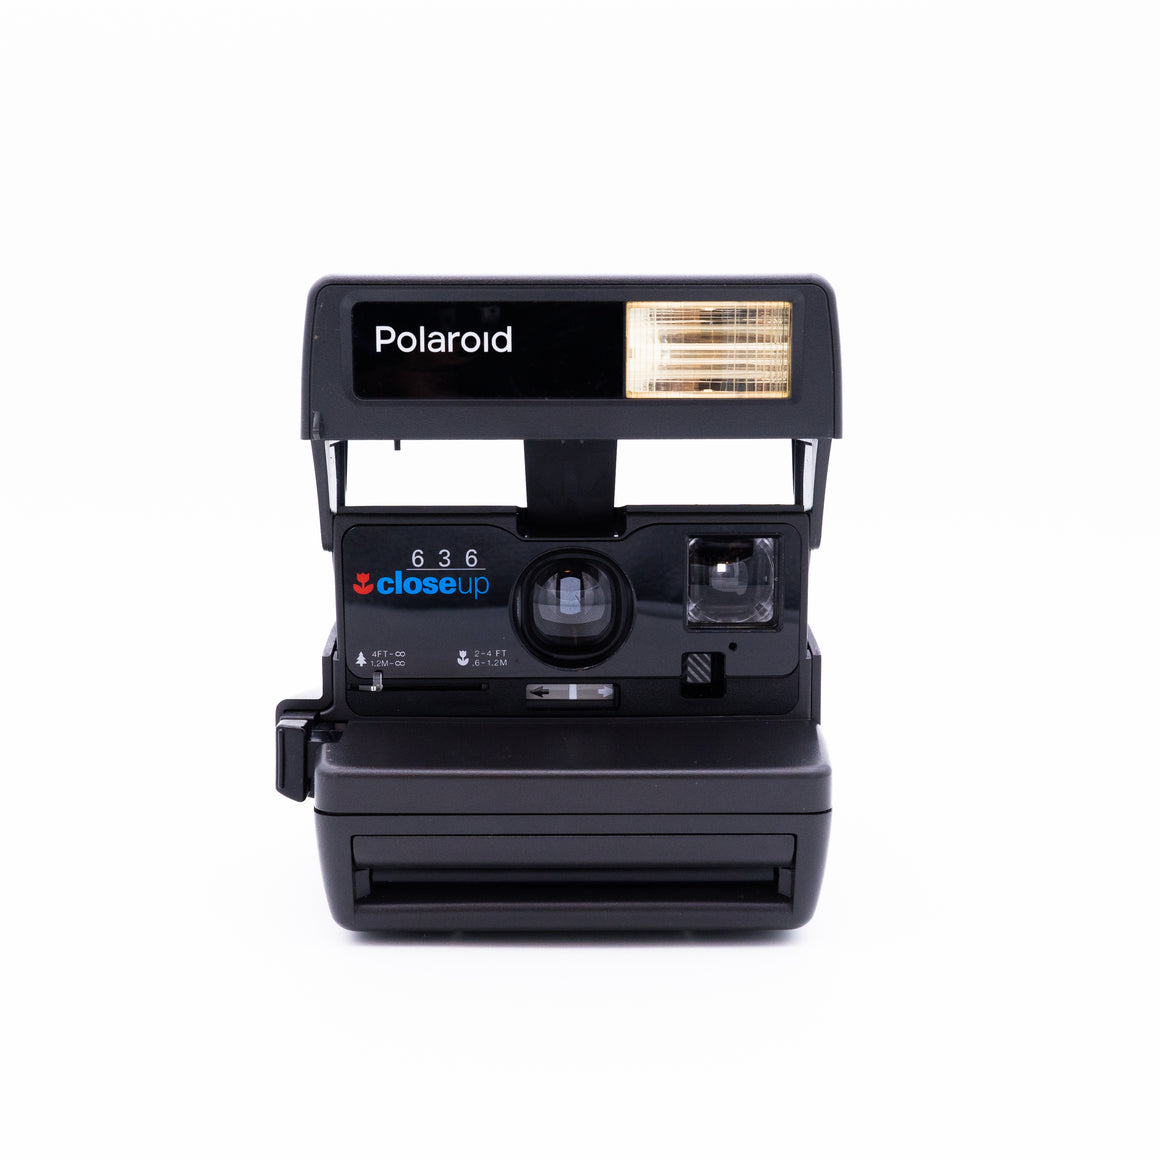 Polaroid 636 Closeup Instant Camera